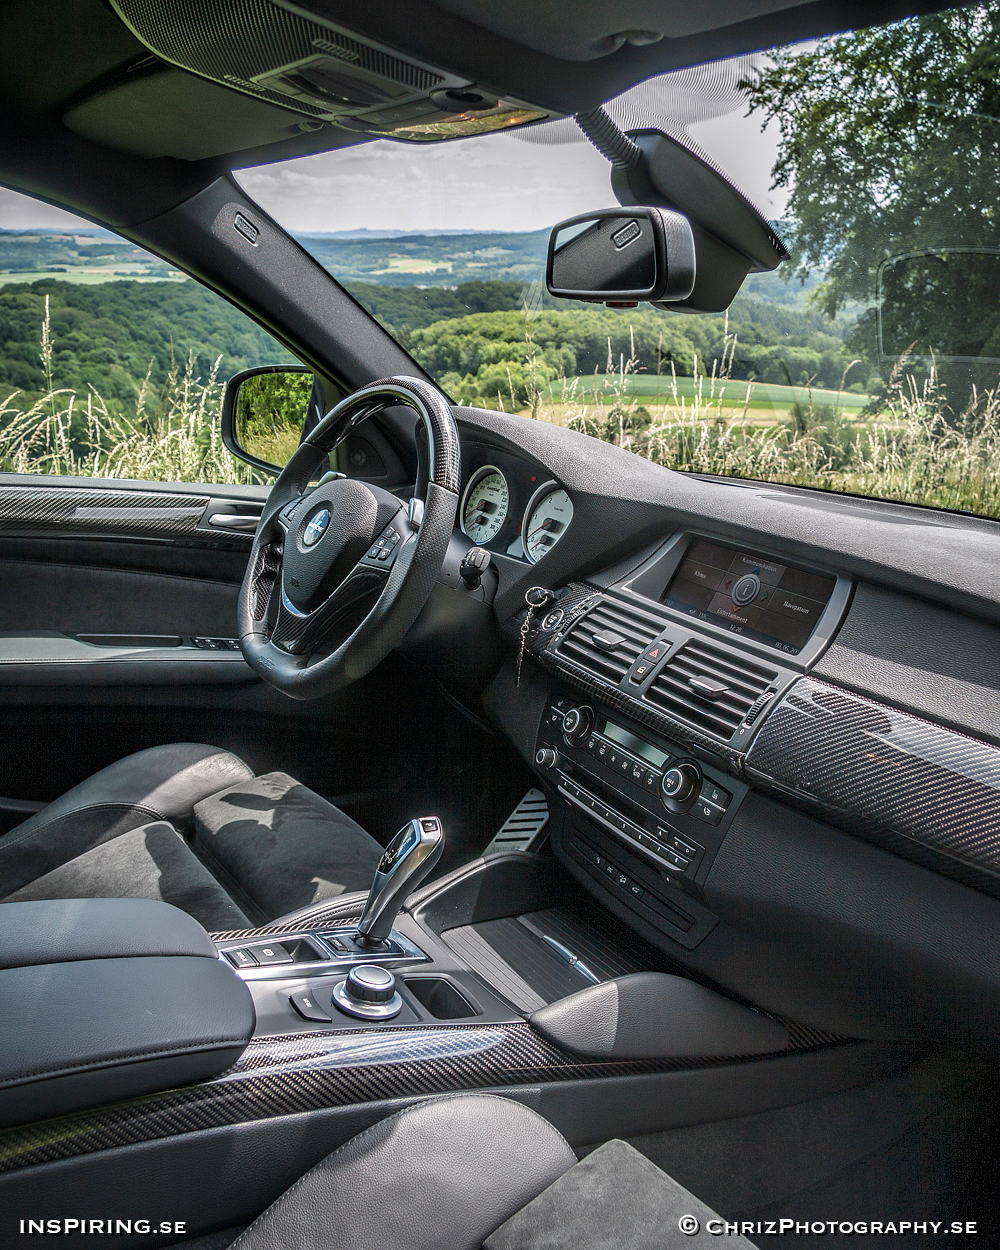 Inspiring.se_OUTTHERE_copyright_ChrizPhotography.se_631_BMW_Hartge_X6interior.jpg